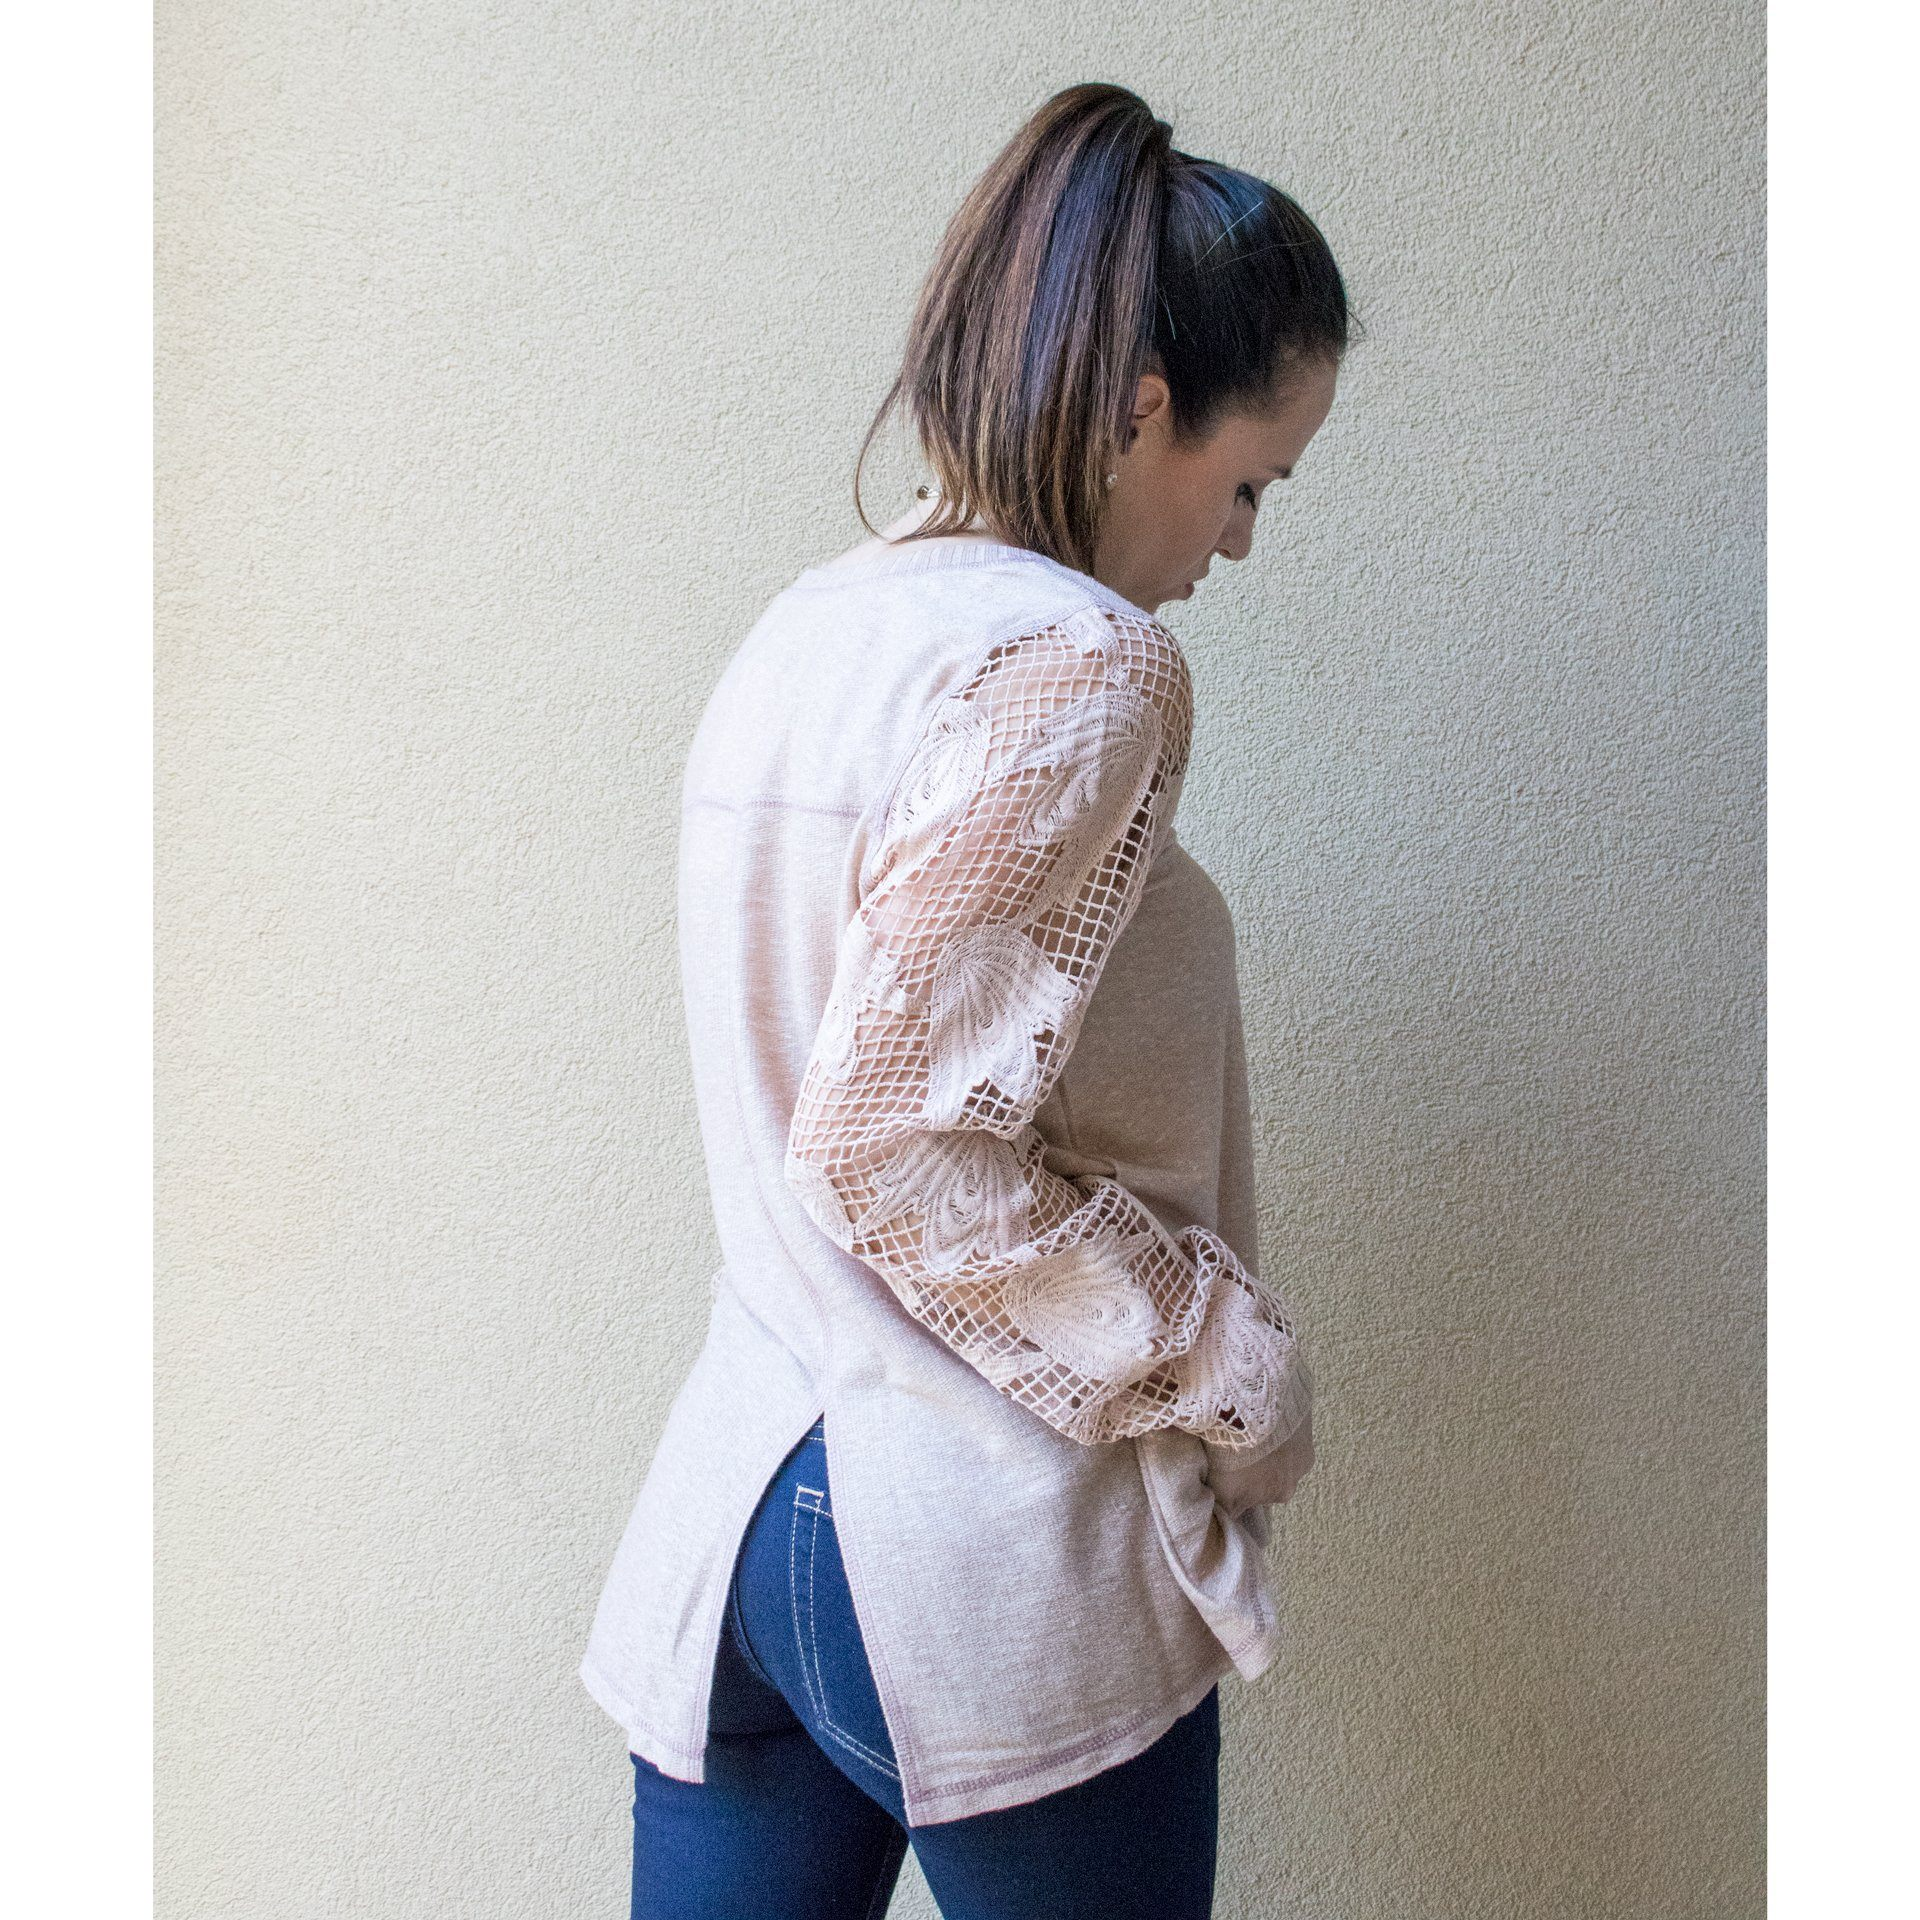 Taupe Top with Long Sleeves in Sheer Floral Mesh - Arlo and Arrows